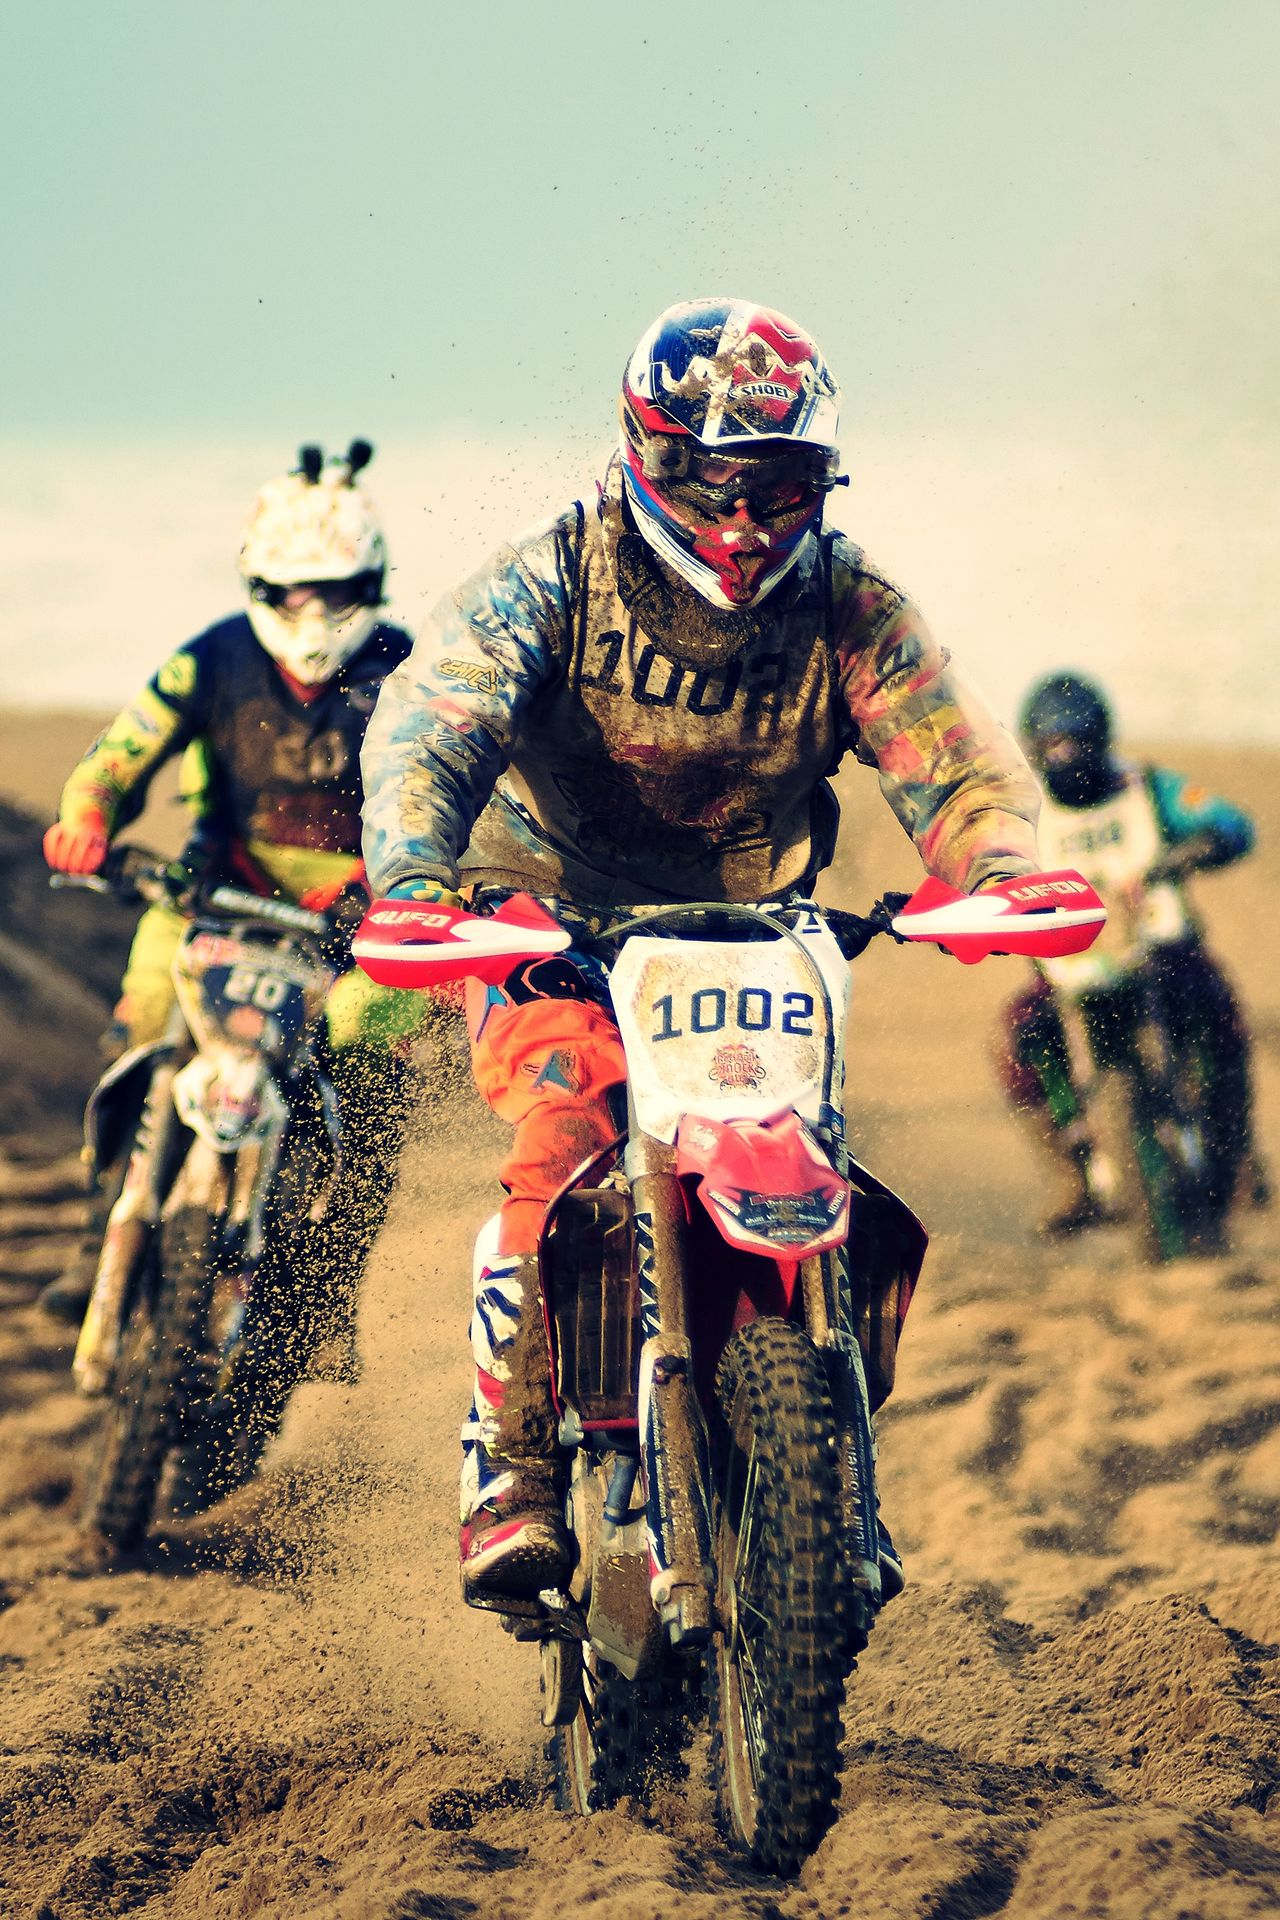 1002 Beach Day Motorcycles Outdoors Race RedBull RedbullEvents Sand